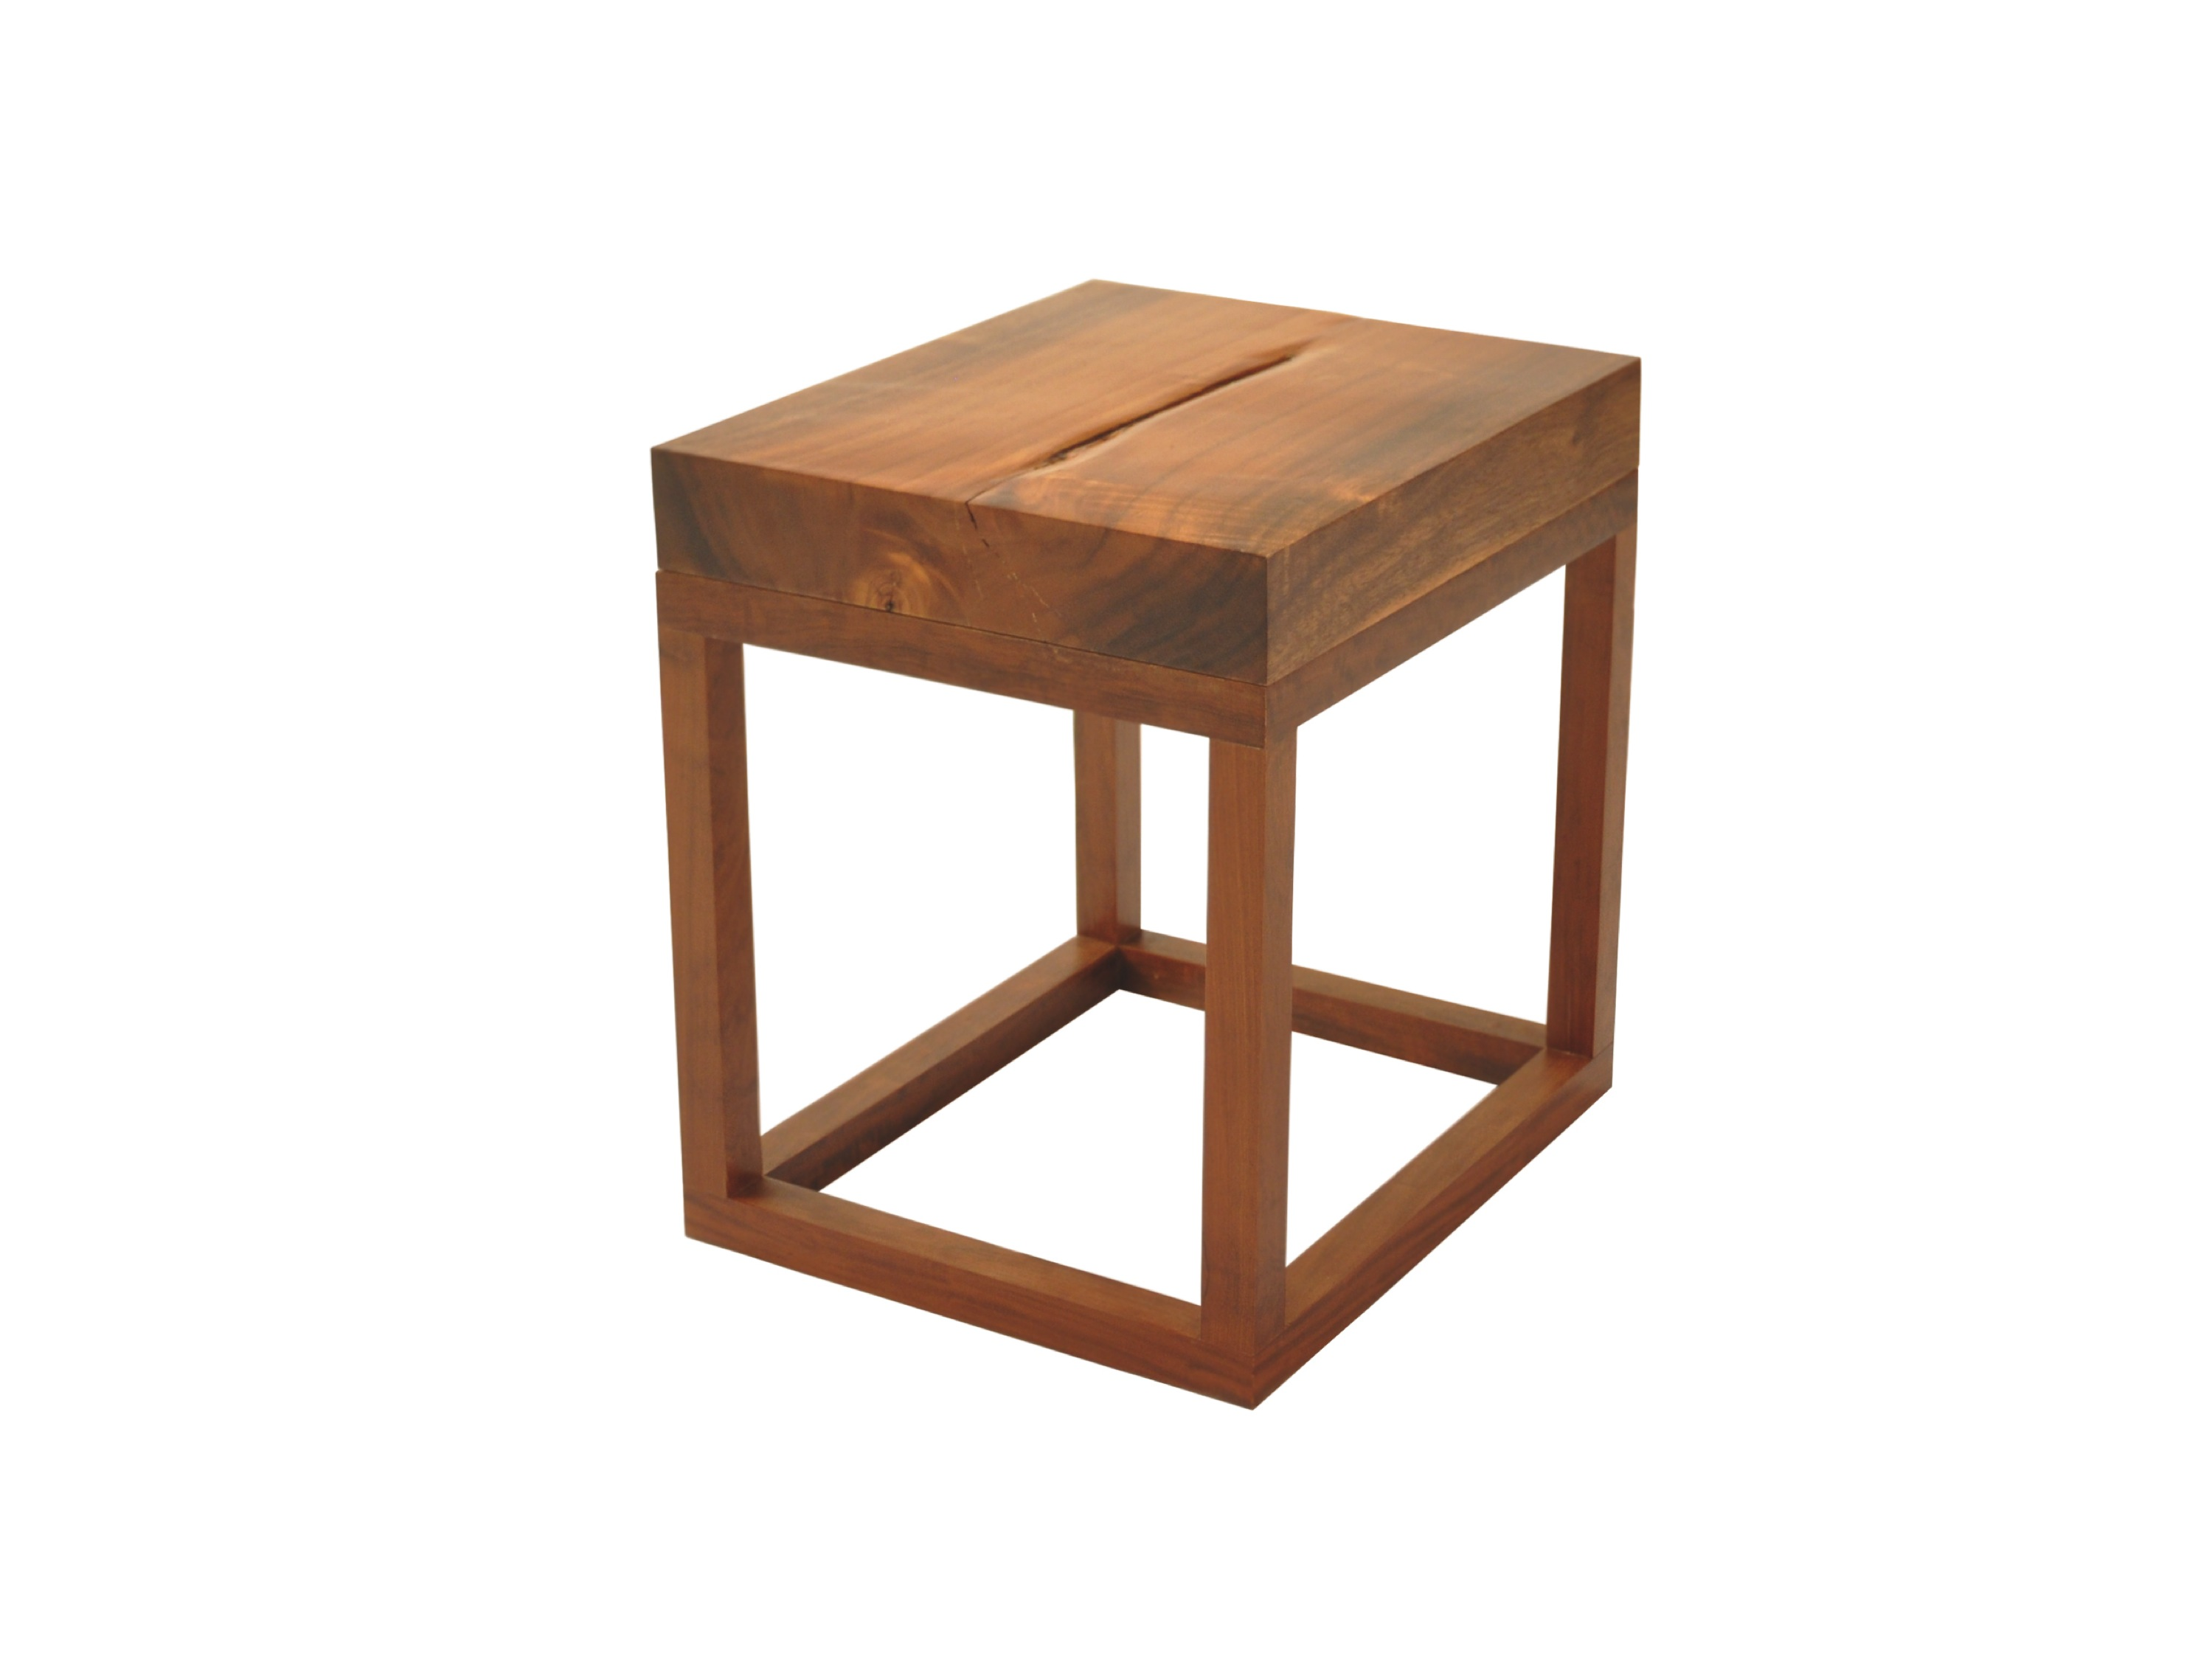 solidood accent tables solidworks viewer state drive solidarity solid wood pdm definition solidify meaning snake box and striped returns forever lyrics solidcore tysons astounding